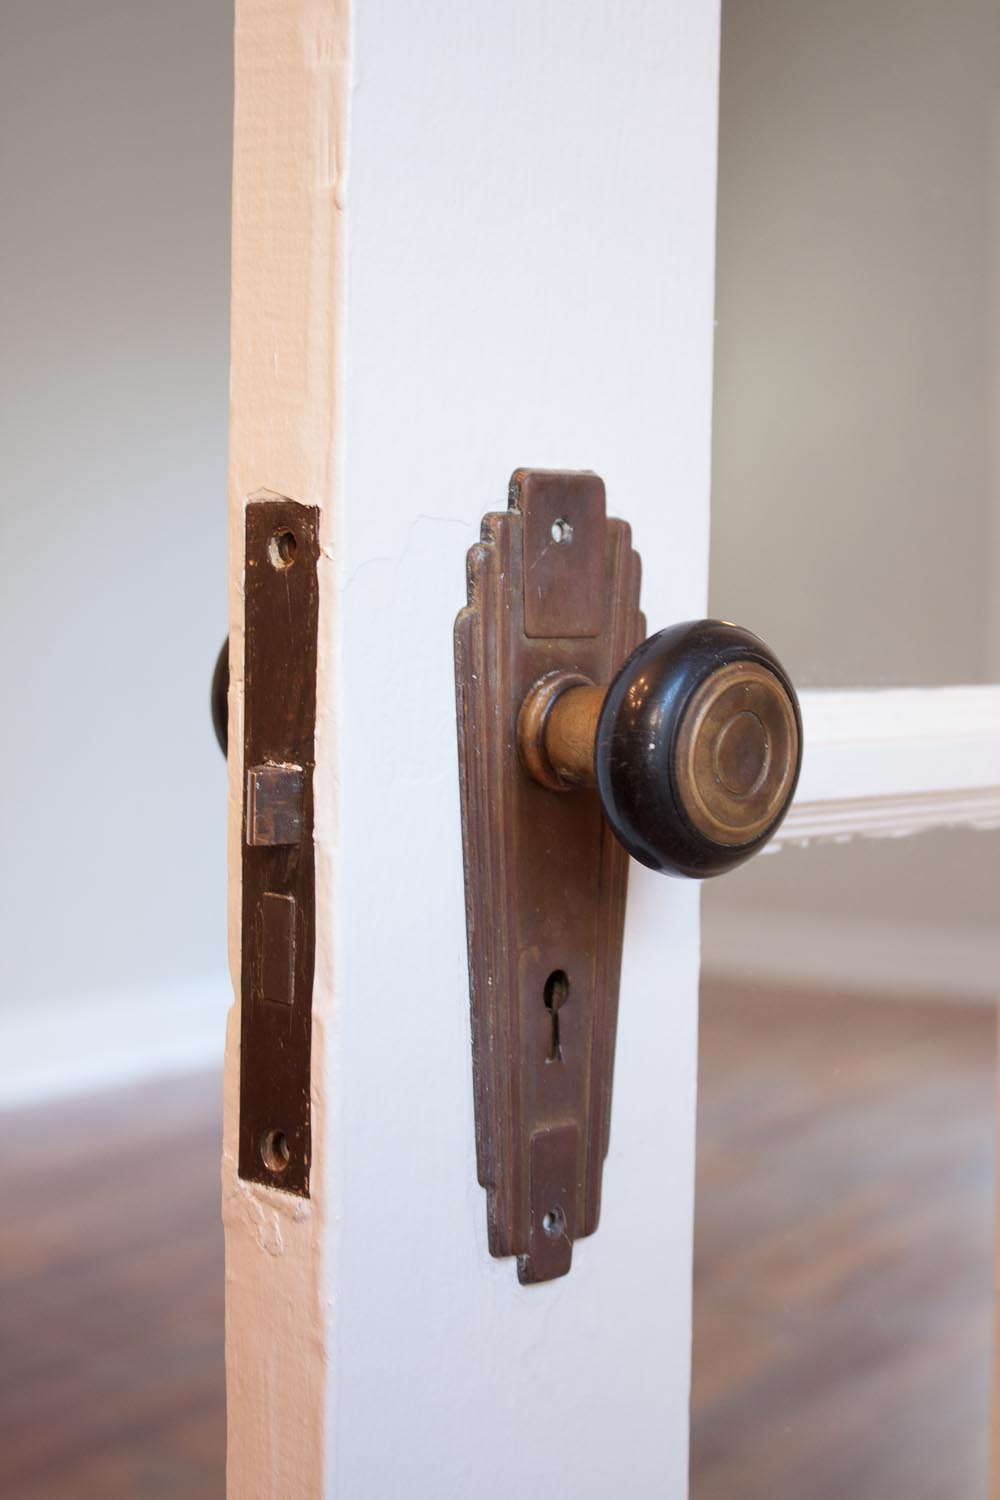 Restored vintage door hardware